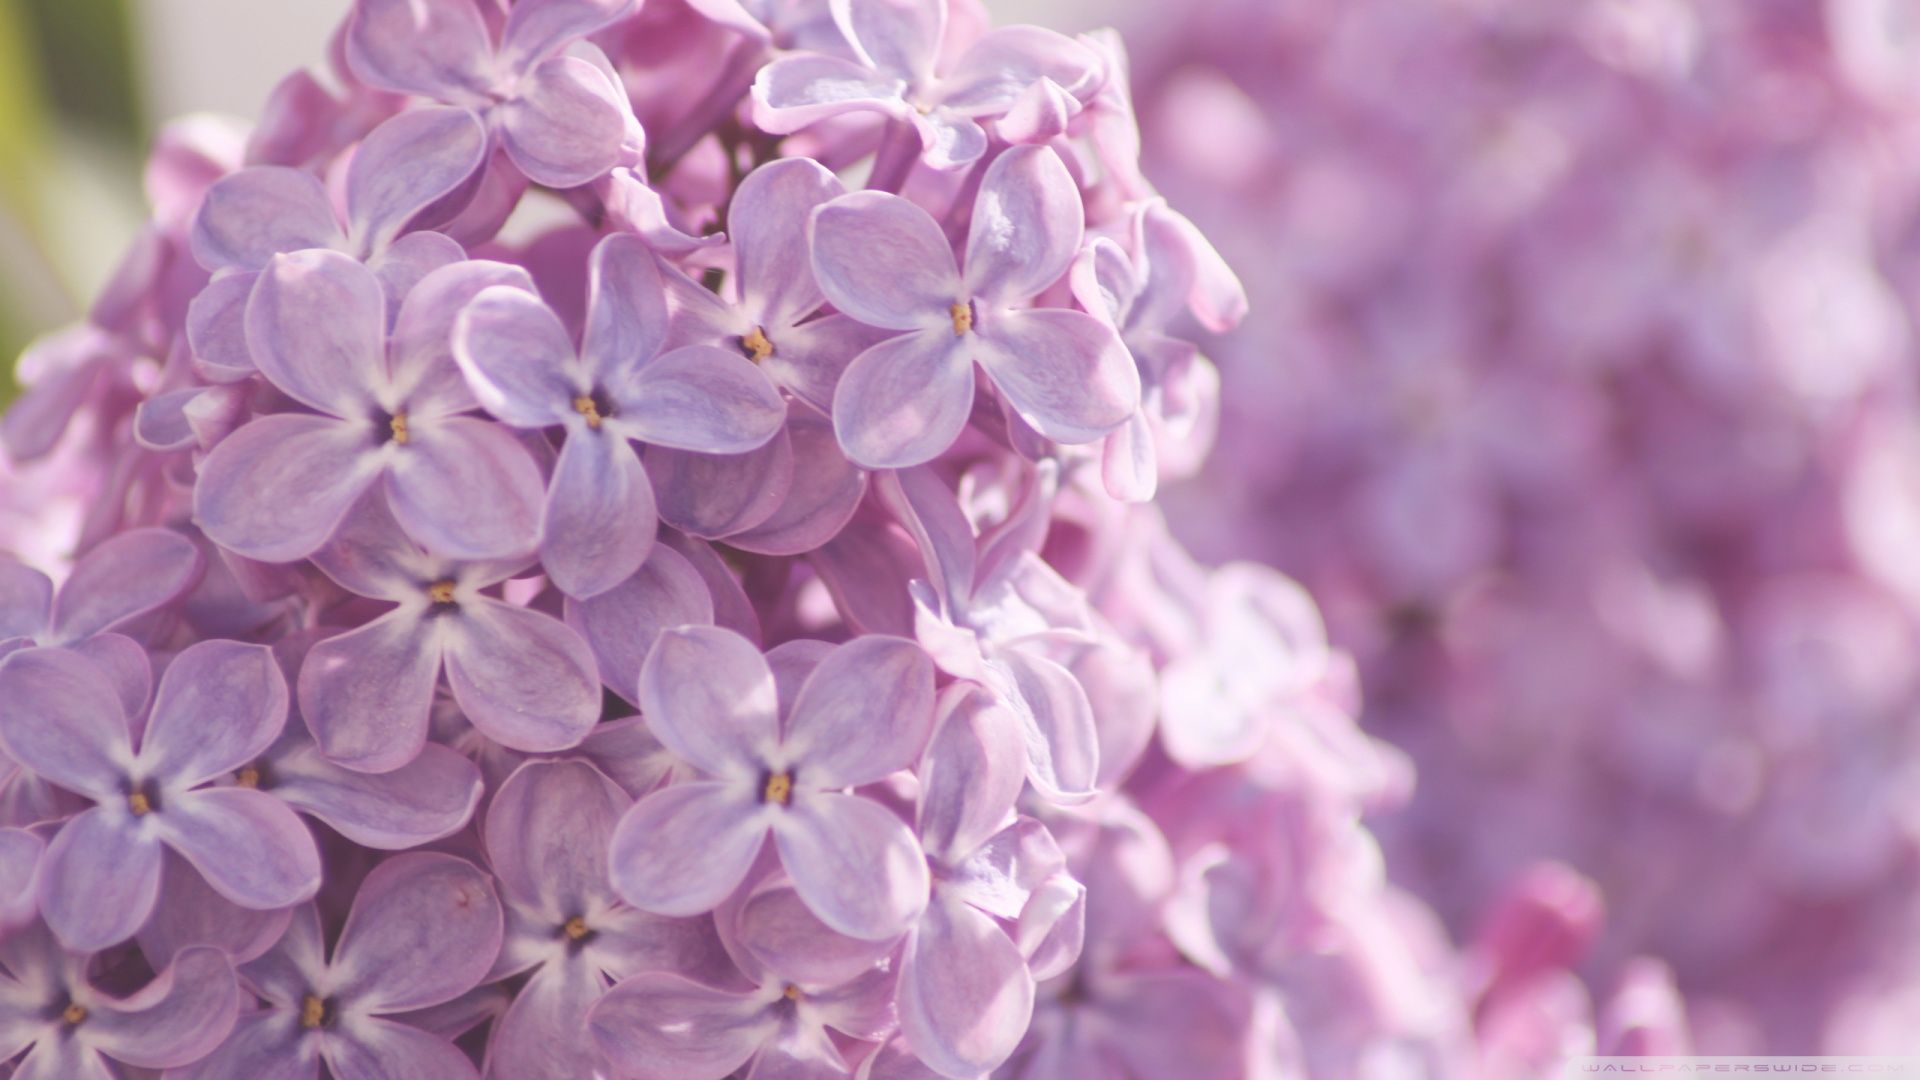 Lilac flower wallpaper pink lilac flowers wallpaper 1920x1080px lilac flower wallpaper pink lilac flowers wallpaper 1920x1080px dhlflorist Choice Image